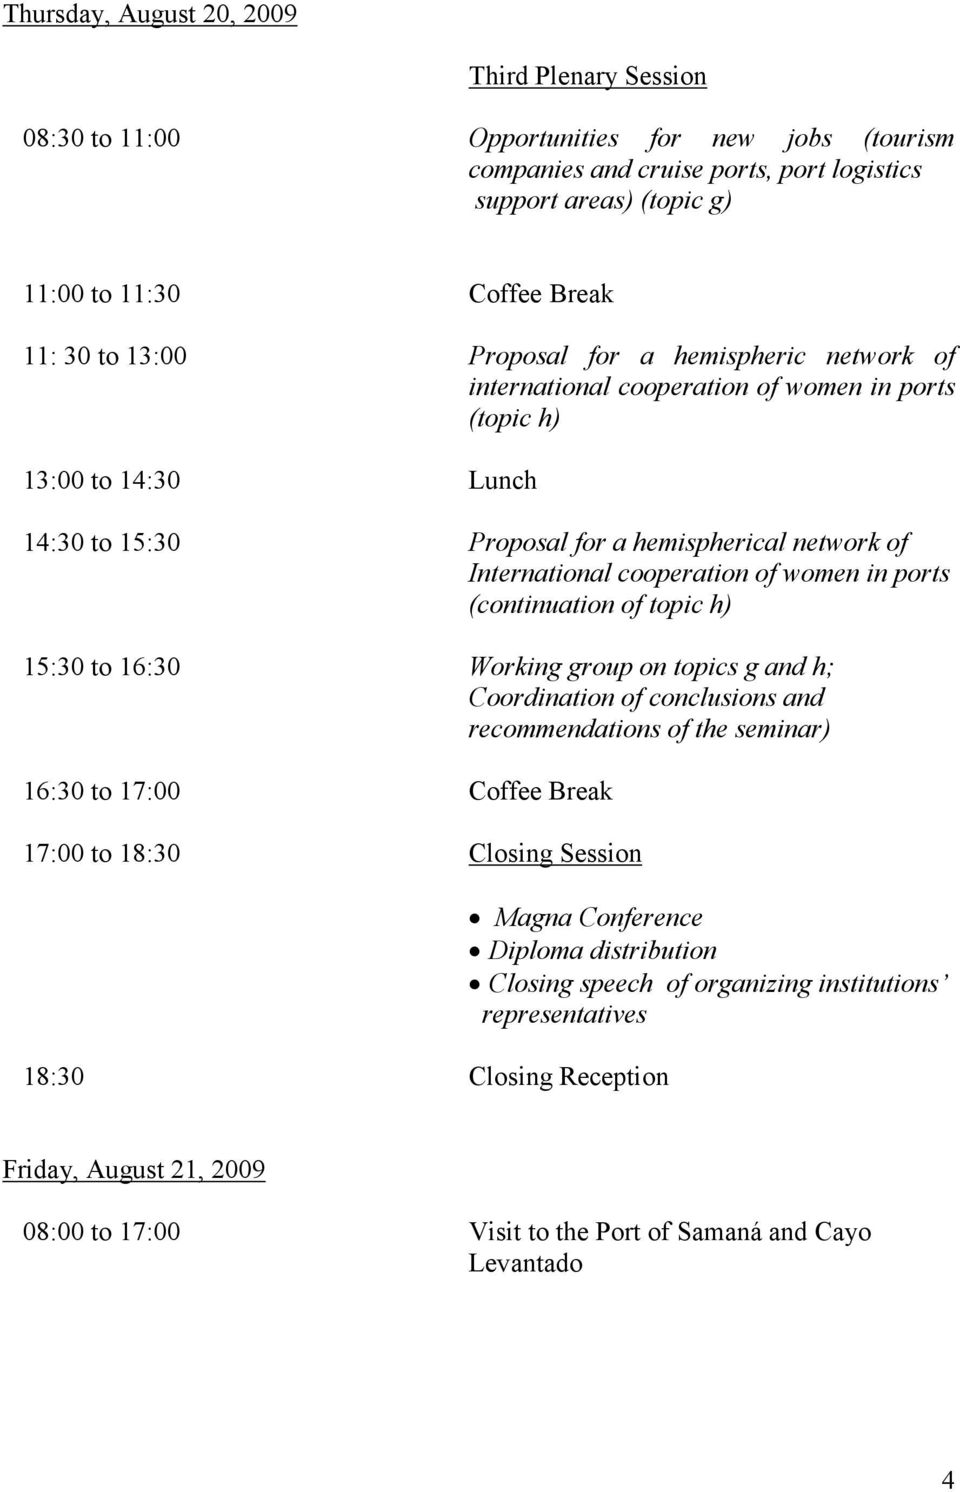 cooperation of women in ports (continuation of topic h) 15:30 to 16:30 Working group on topics g and h; Coordination of conclusions and recommendations of the seminar) 16:30 to 17:00 Coffee Break